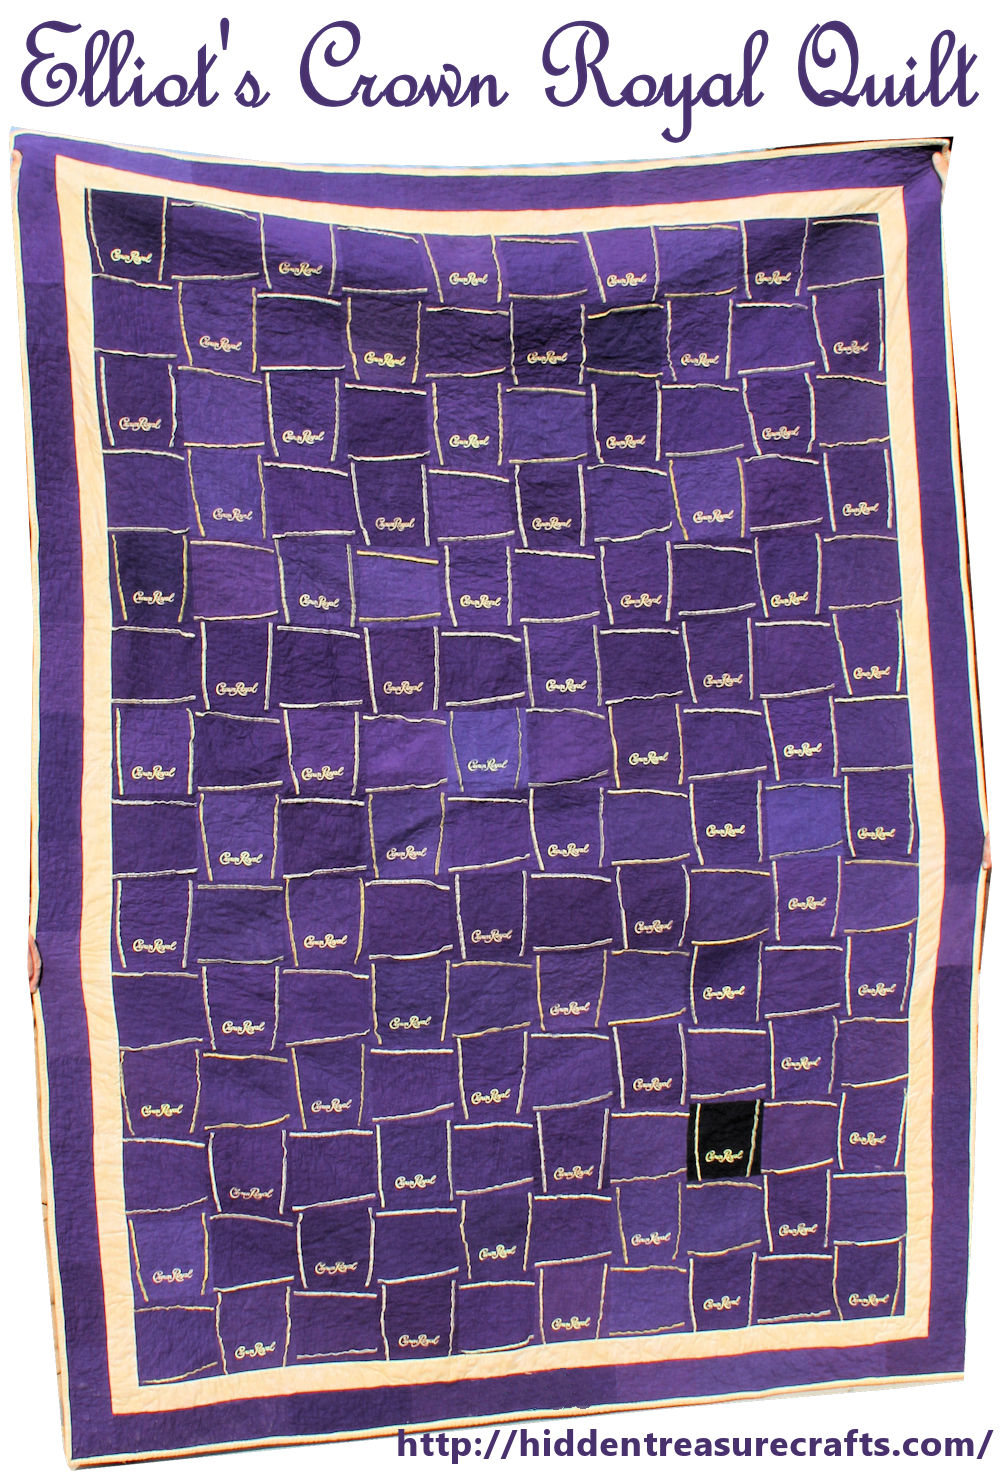 Elliot's Crown Royal Quilt